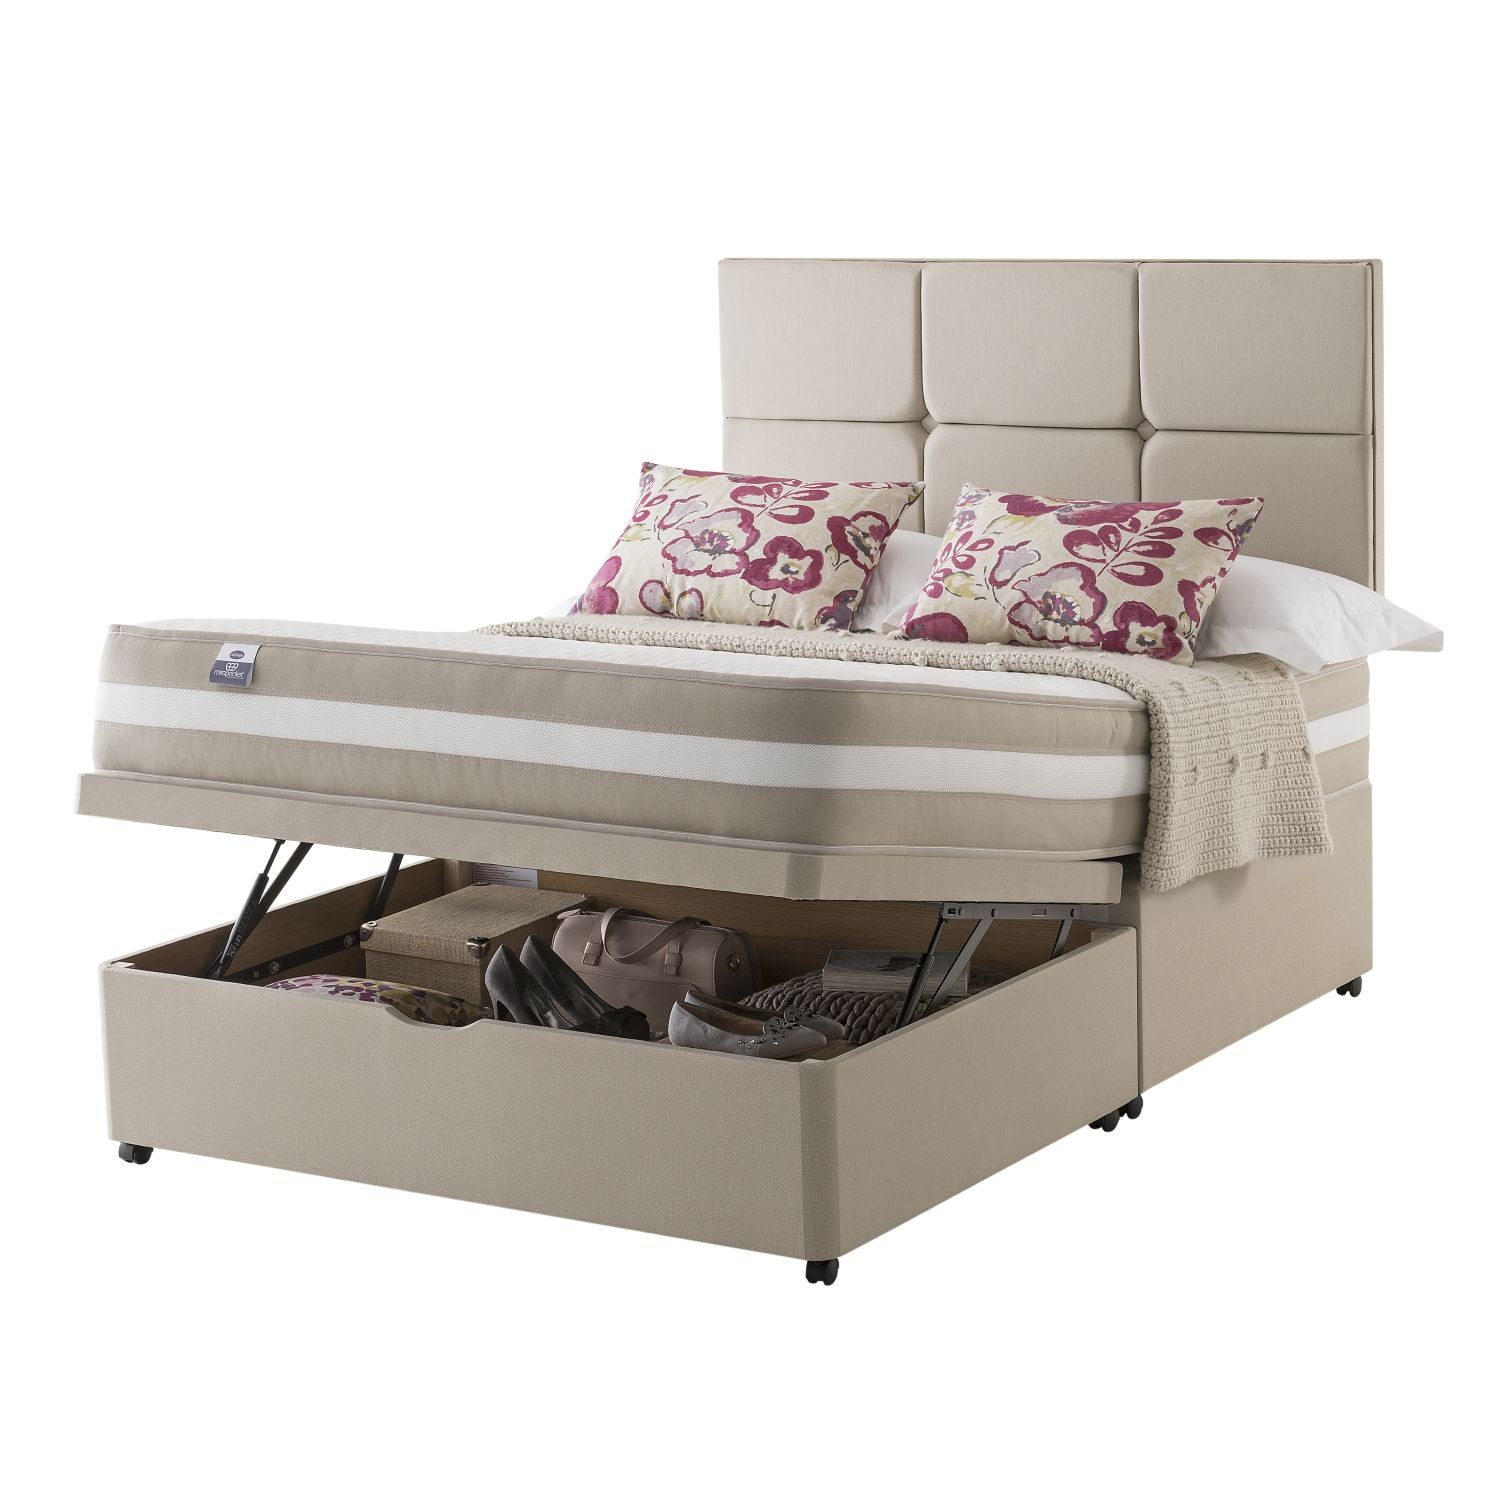 Silentnight naples platform top ottoman divan double leeke for Silentnight divan